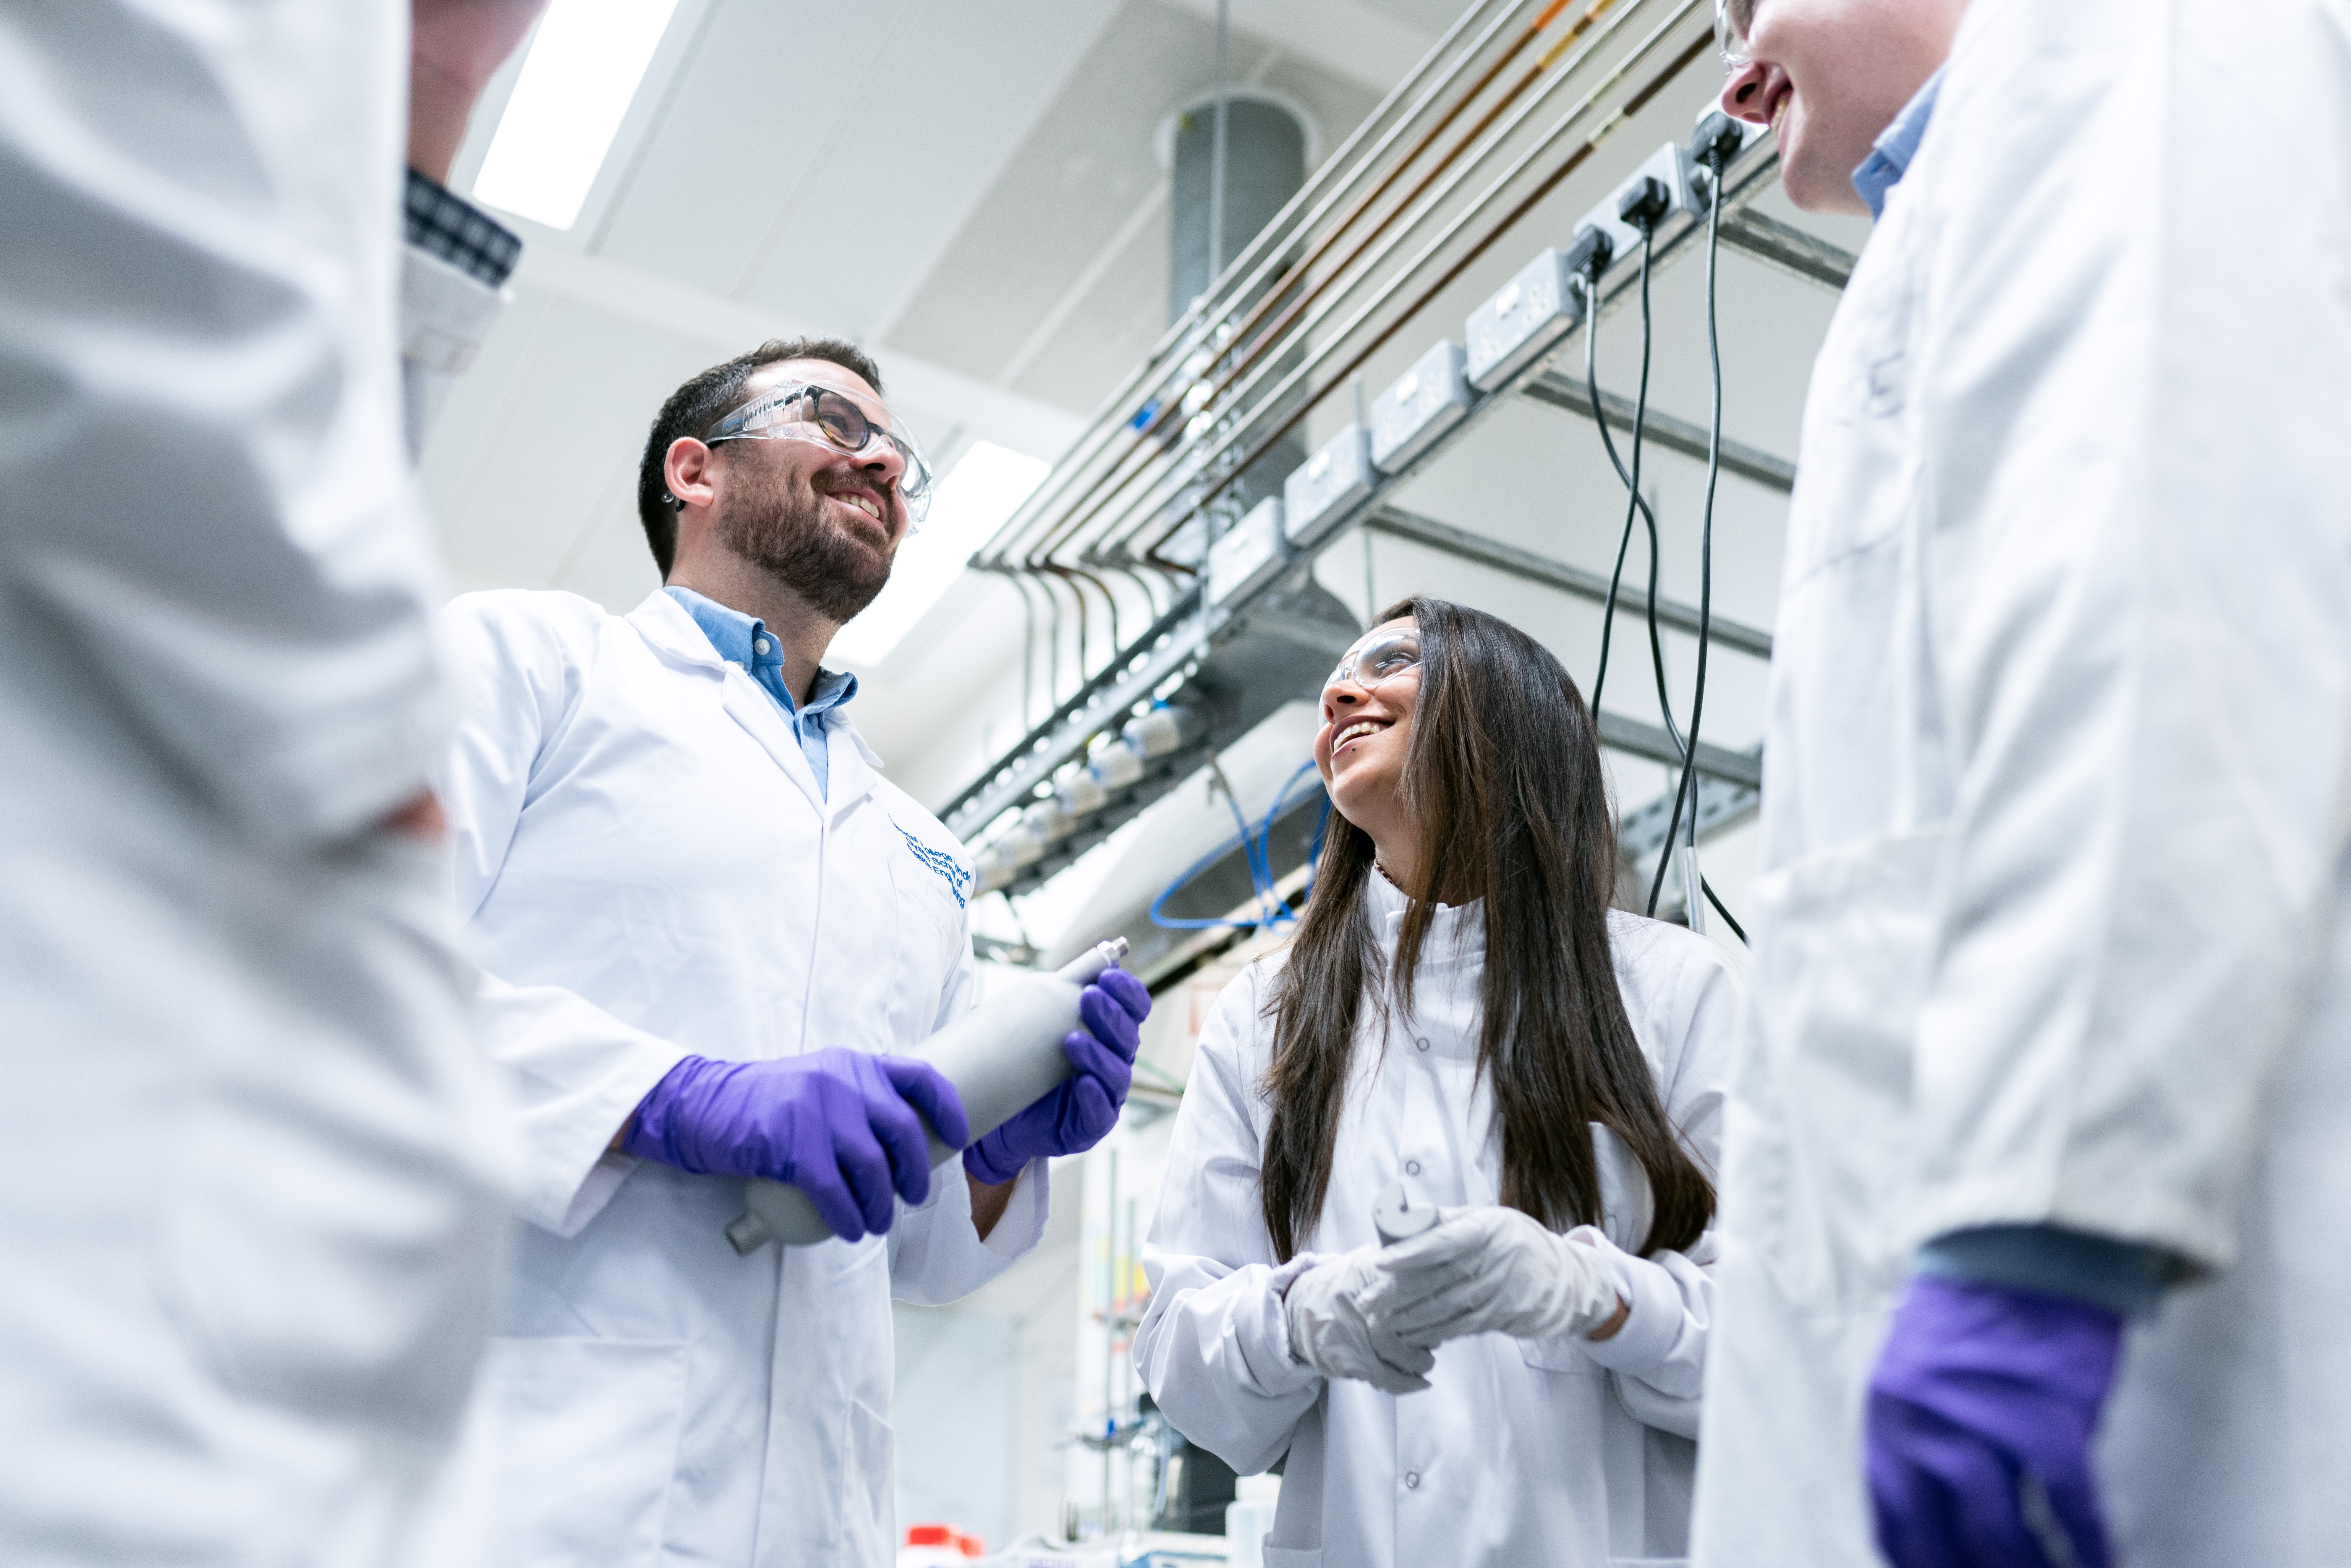 Pictured - Chemical engineers in the laboratory | Source: Pexels